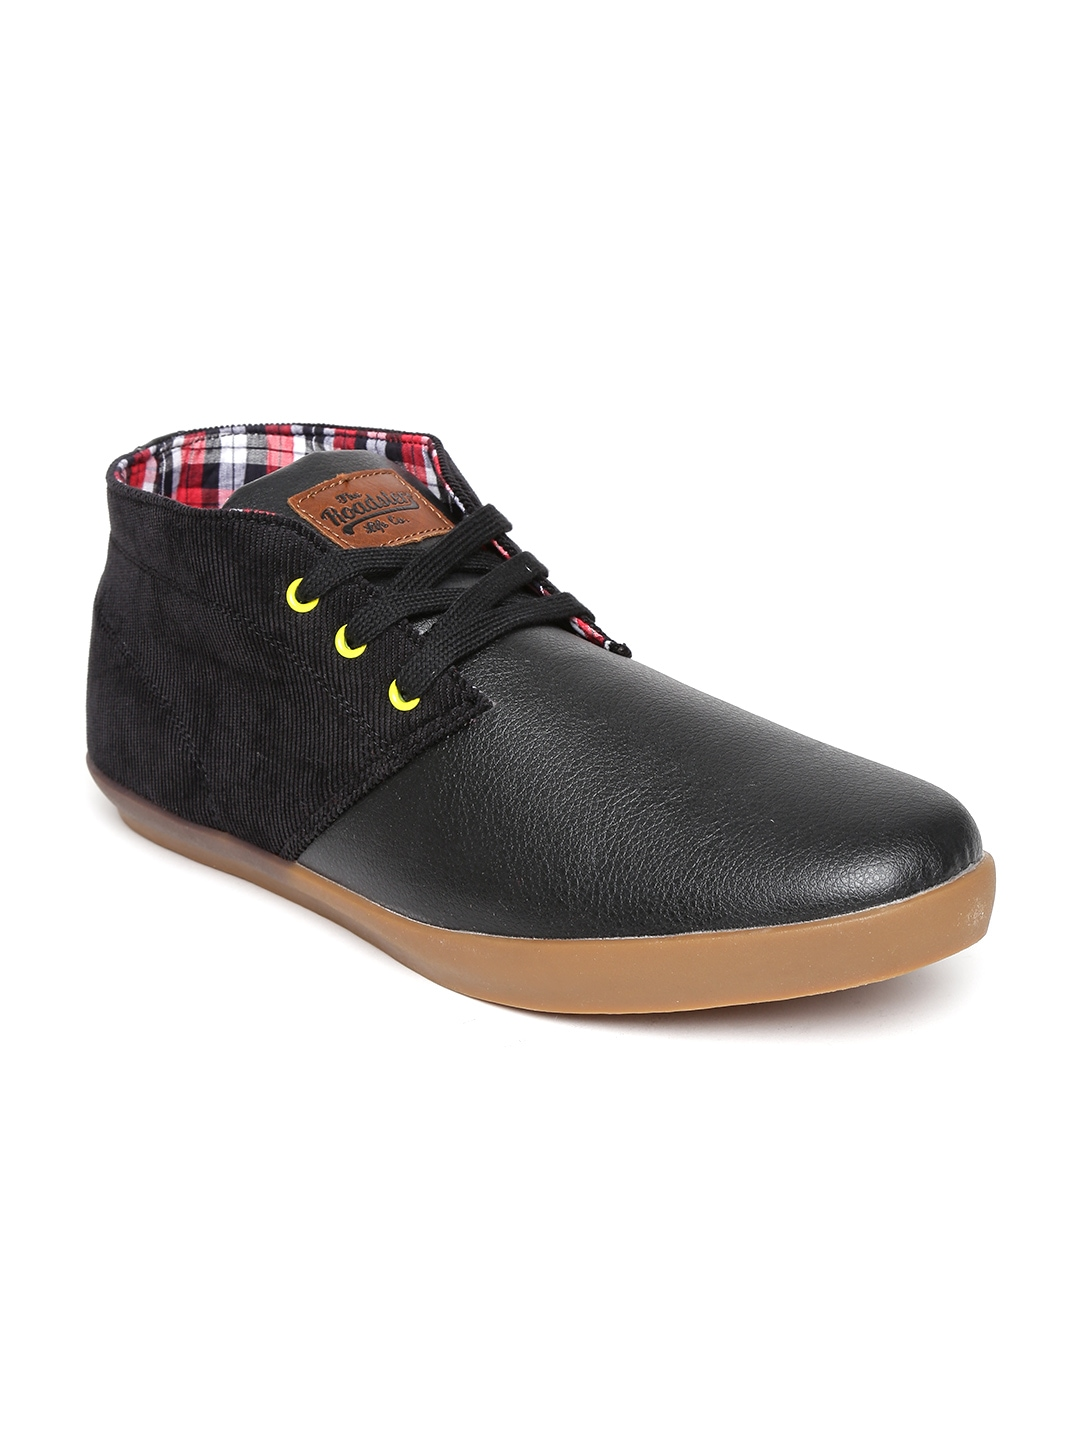 myntra roadster black casual shoes 856912 buy myntra